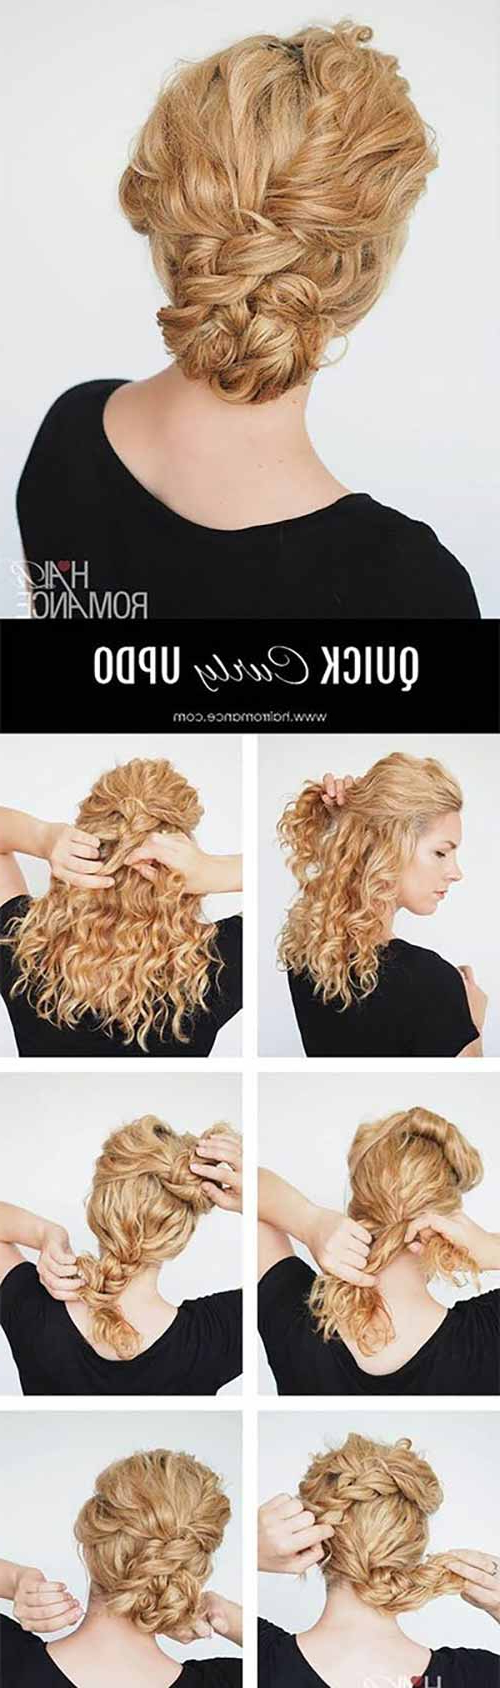 Popular Easy Curled Prom Updos For 20 Incredibly Stunning Diy Updos For Curly Hair (View 16 of 20)